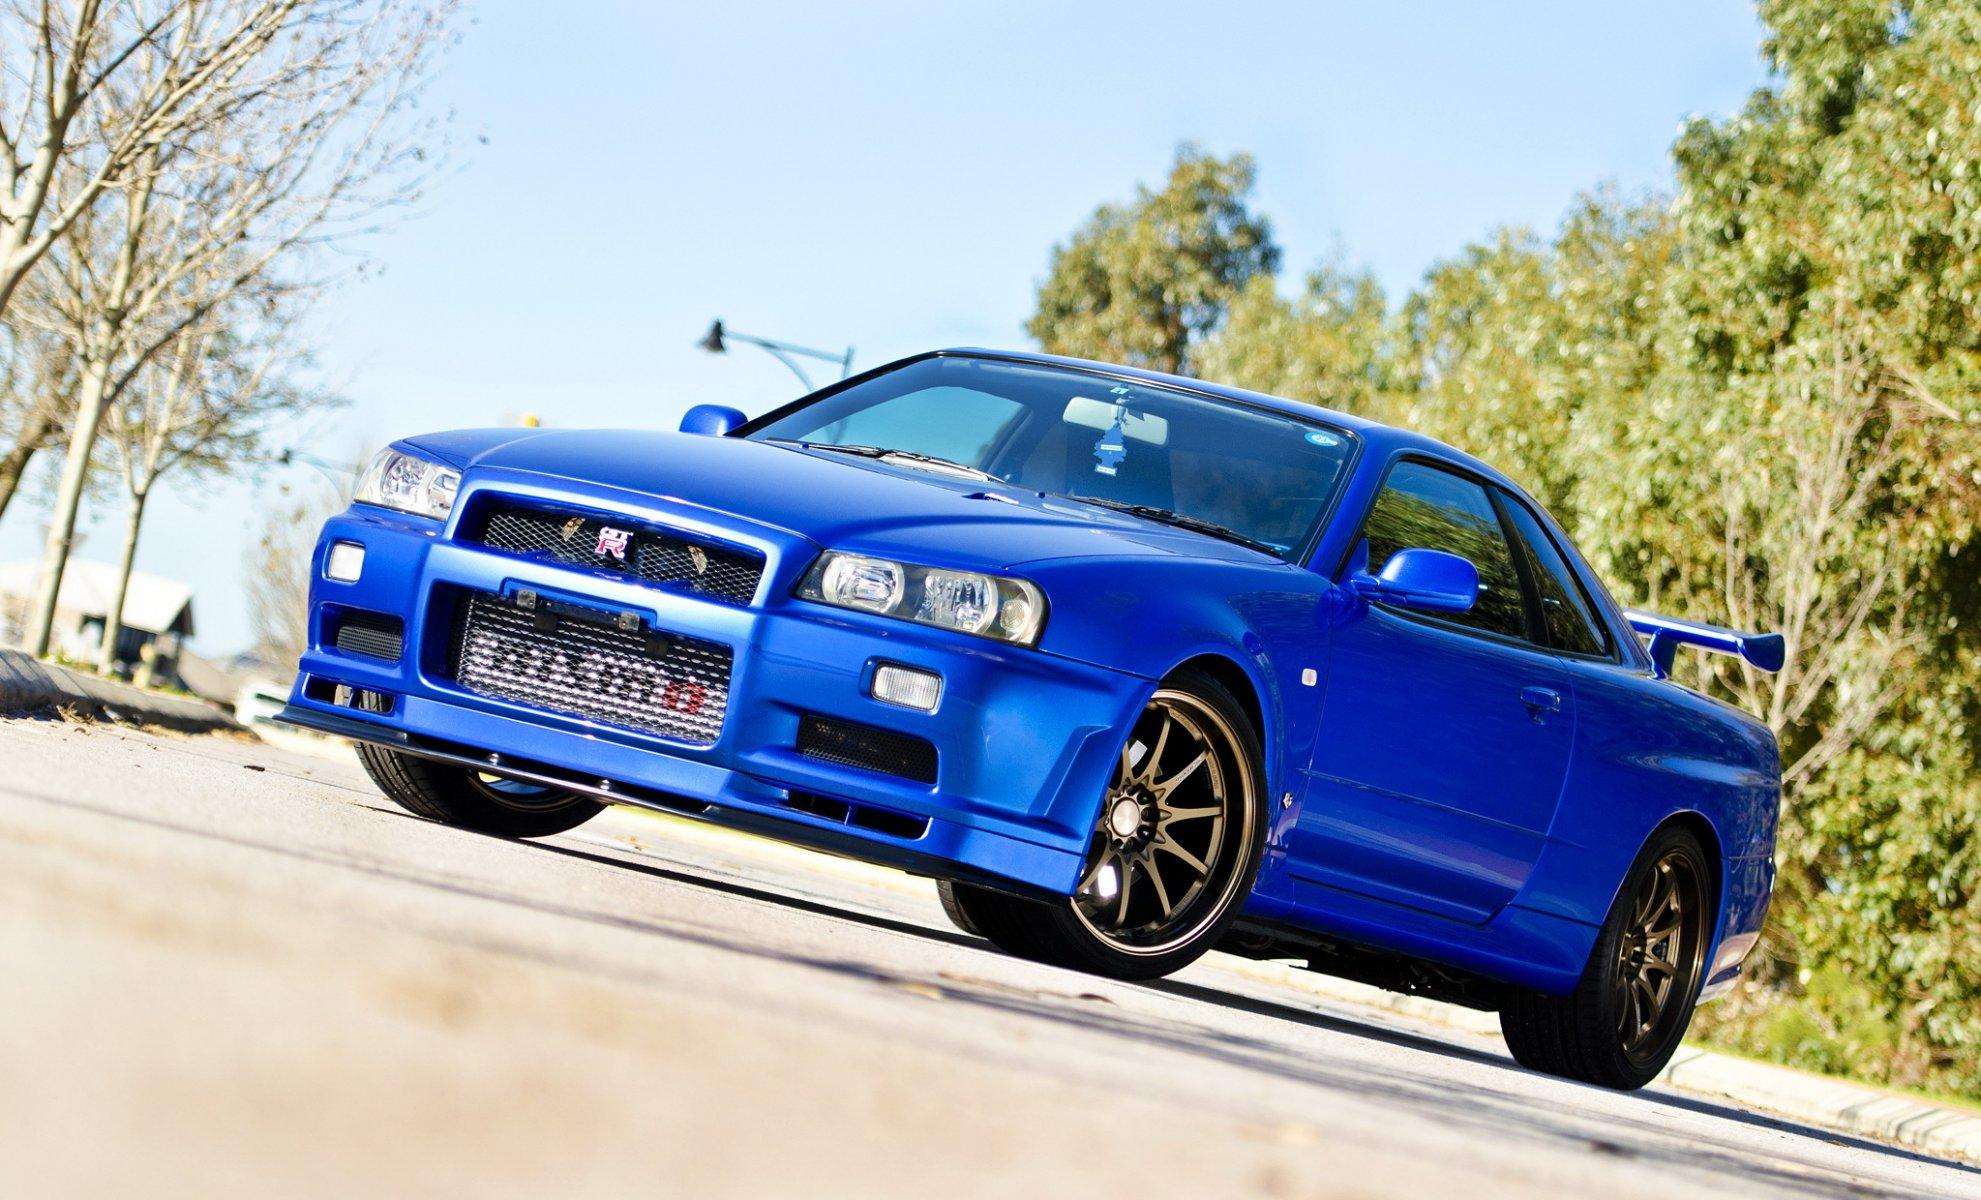 Chassis enhancements for Nissan Skyline GTR R33 R34 from Hardrace